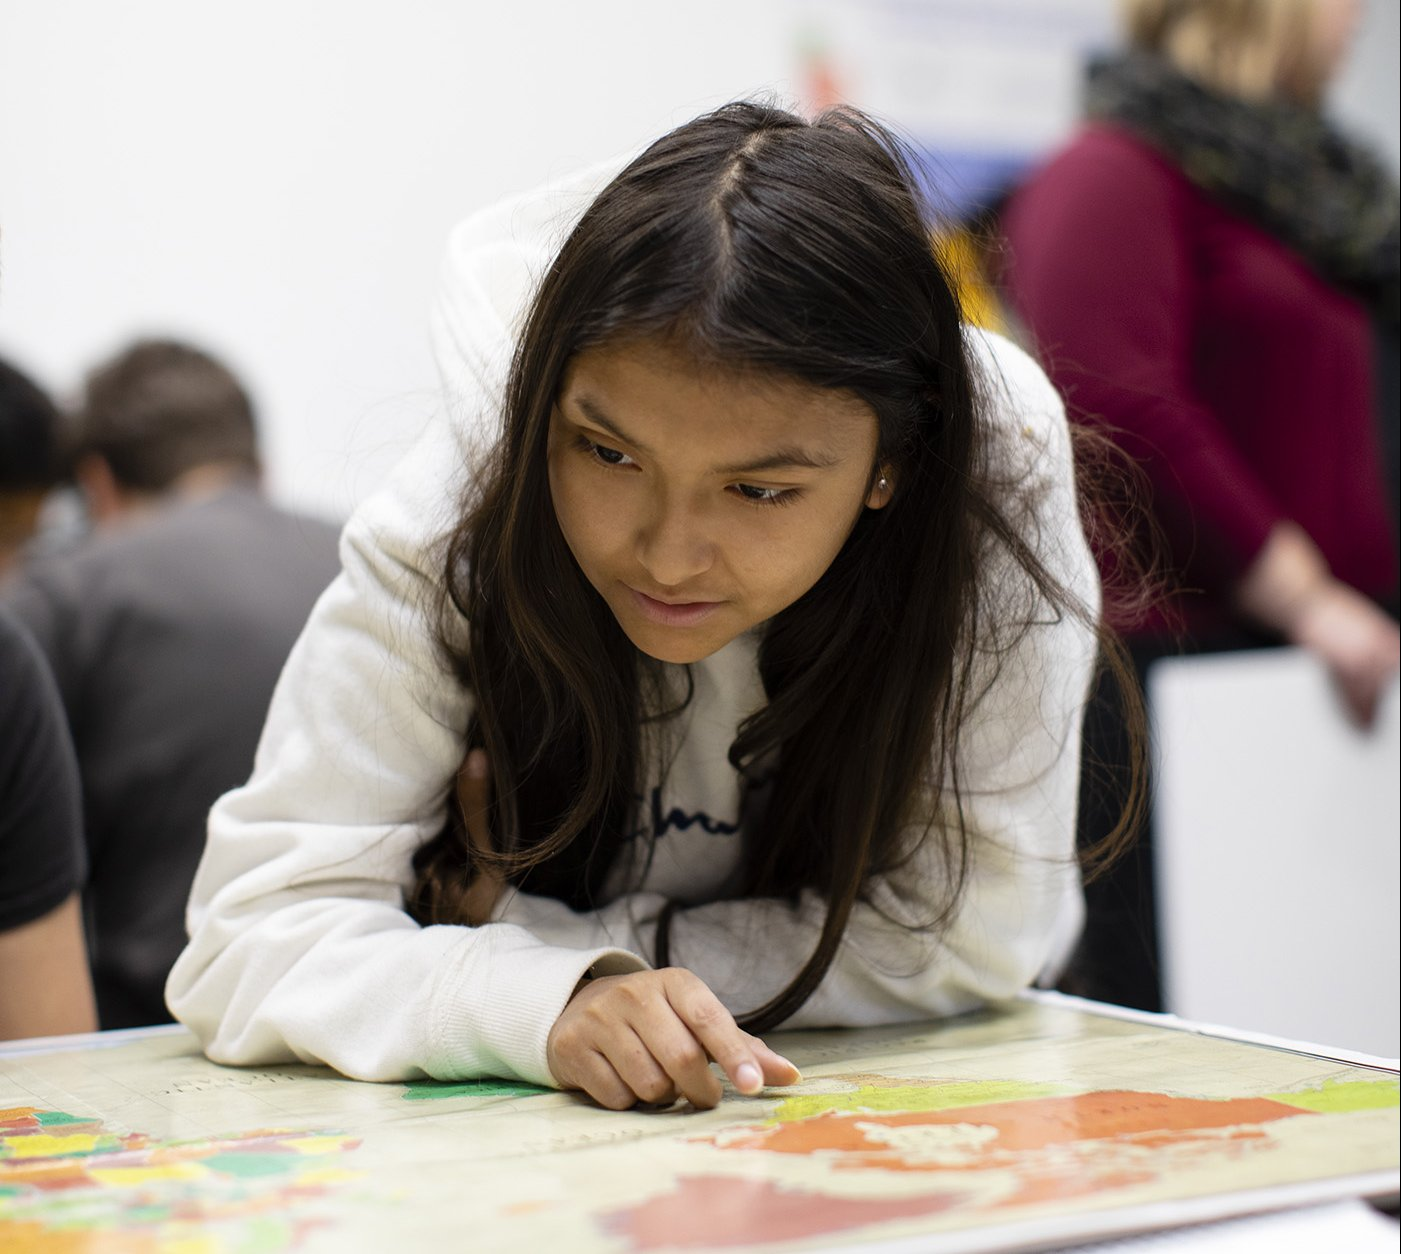 A student appears focused, pointing to a map on a tabletop.